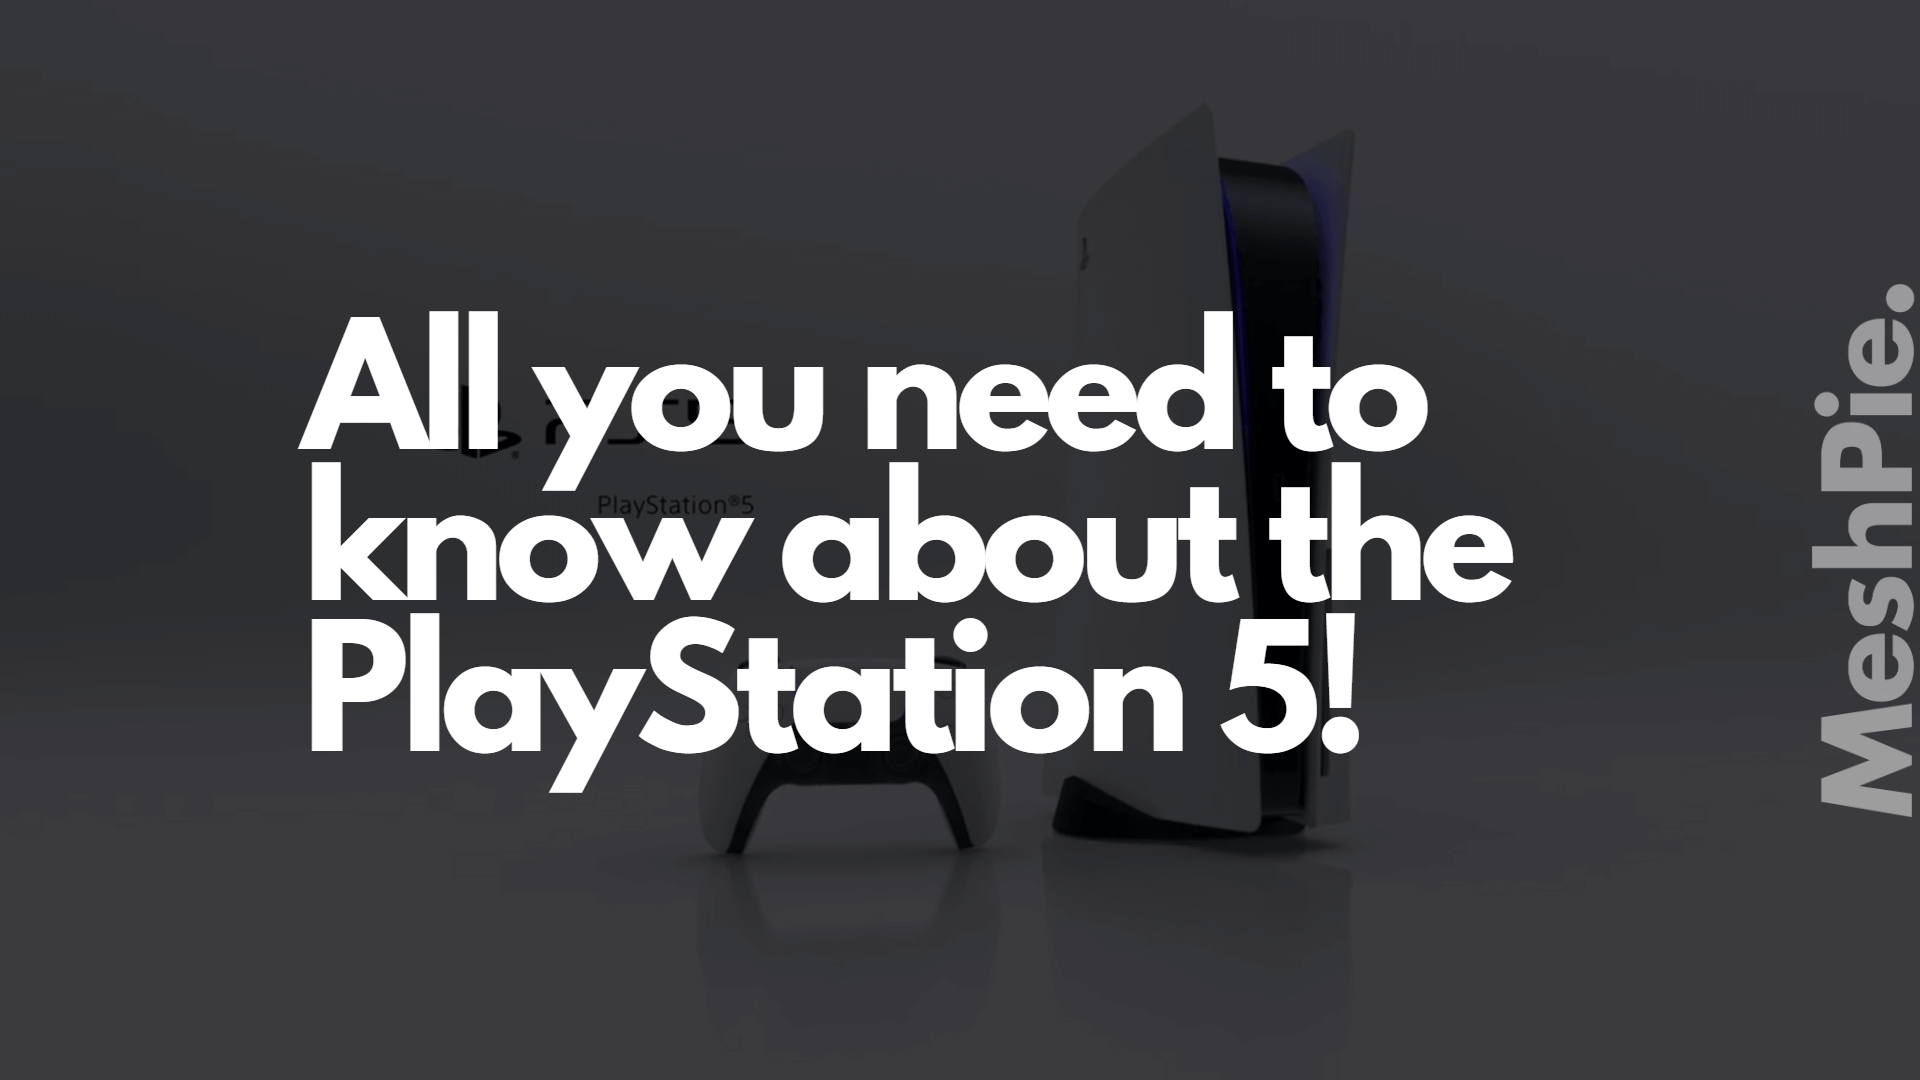 All you need to know about the PlayStation 5!